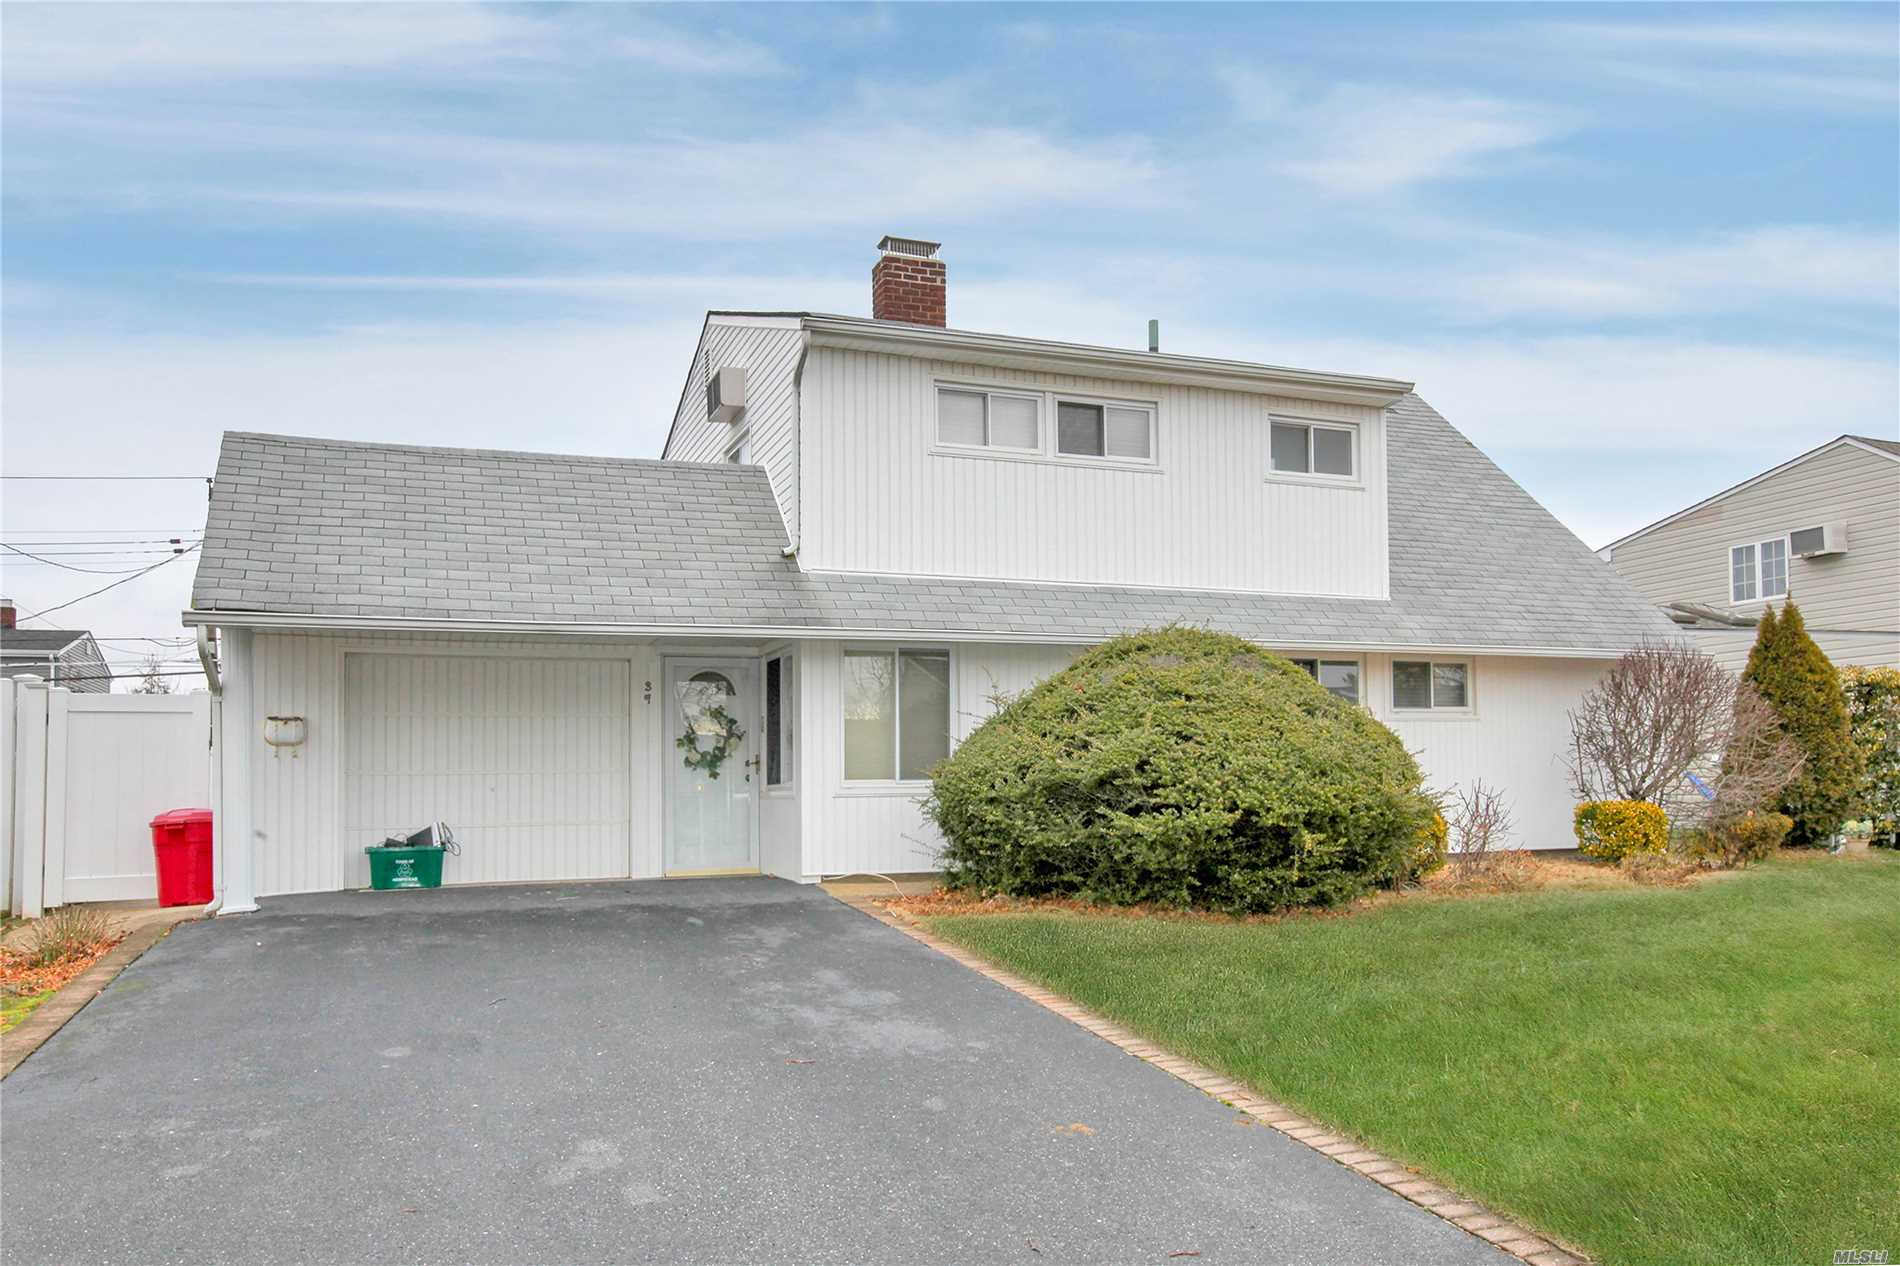 Welcome Home....Expanded Levitt Offers 3Bdrms, 2 Full Updated Bathrooms, Eik With Stainless Steel Appliances And Radiant Heated Floors, Fireplace Can Be Viewed From Living Room And Kitchen, Located In The DSection Of Wantagh And Levittown Schools, Don't Miss This Great Opportunity.